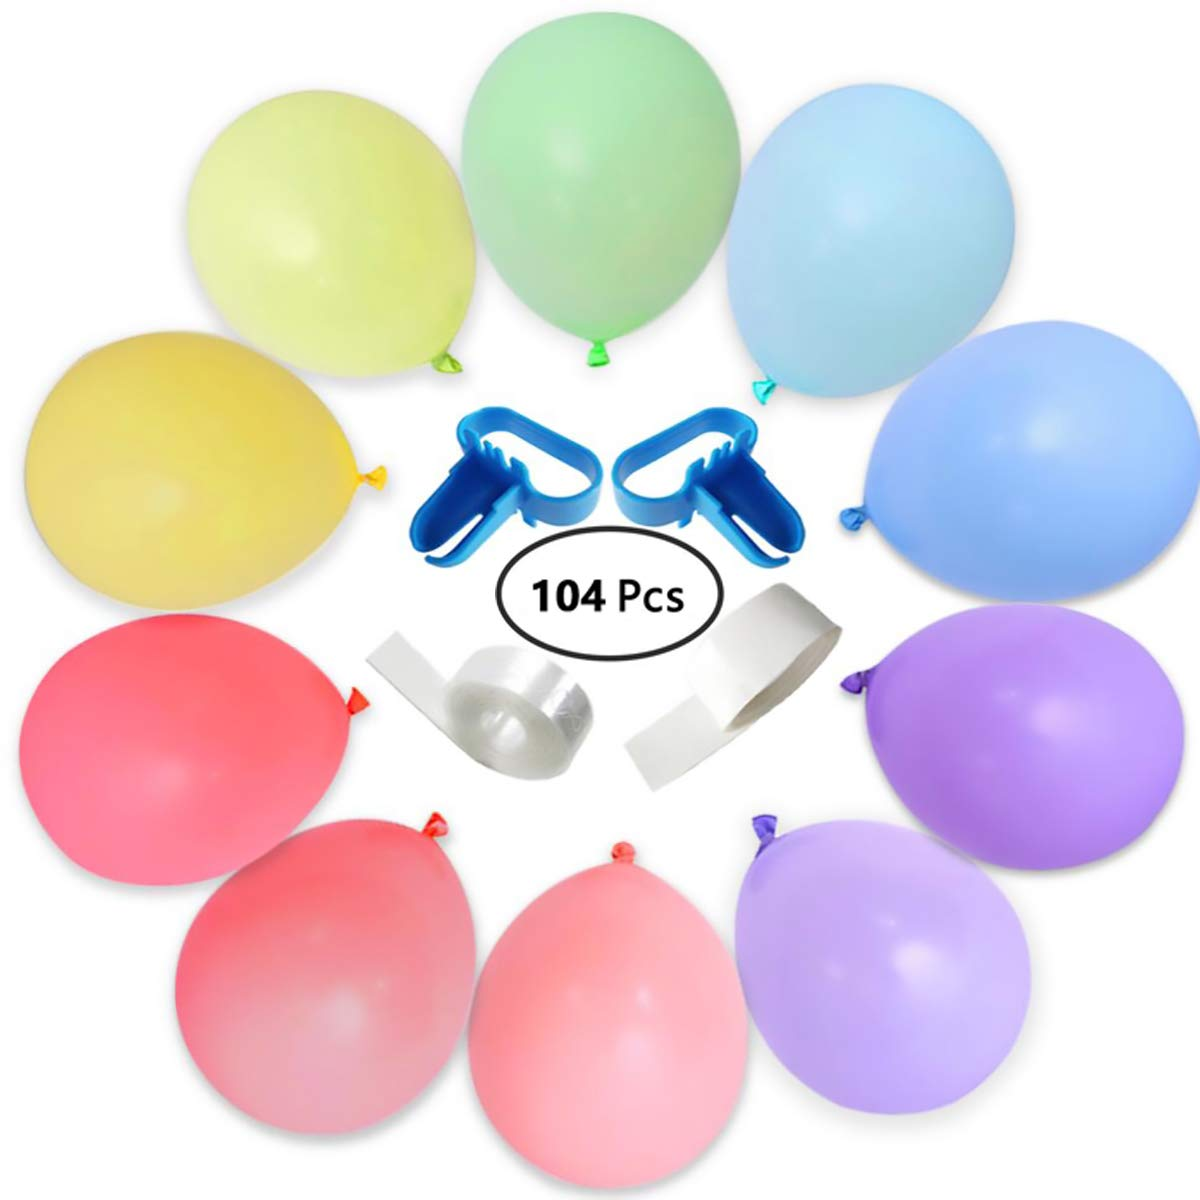 Jjyee Party Balloons Pastel Assorted Color 12 inches Rainbow Set Helium Or Air Use for Birthday Decoration(104 Pcs)